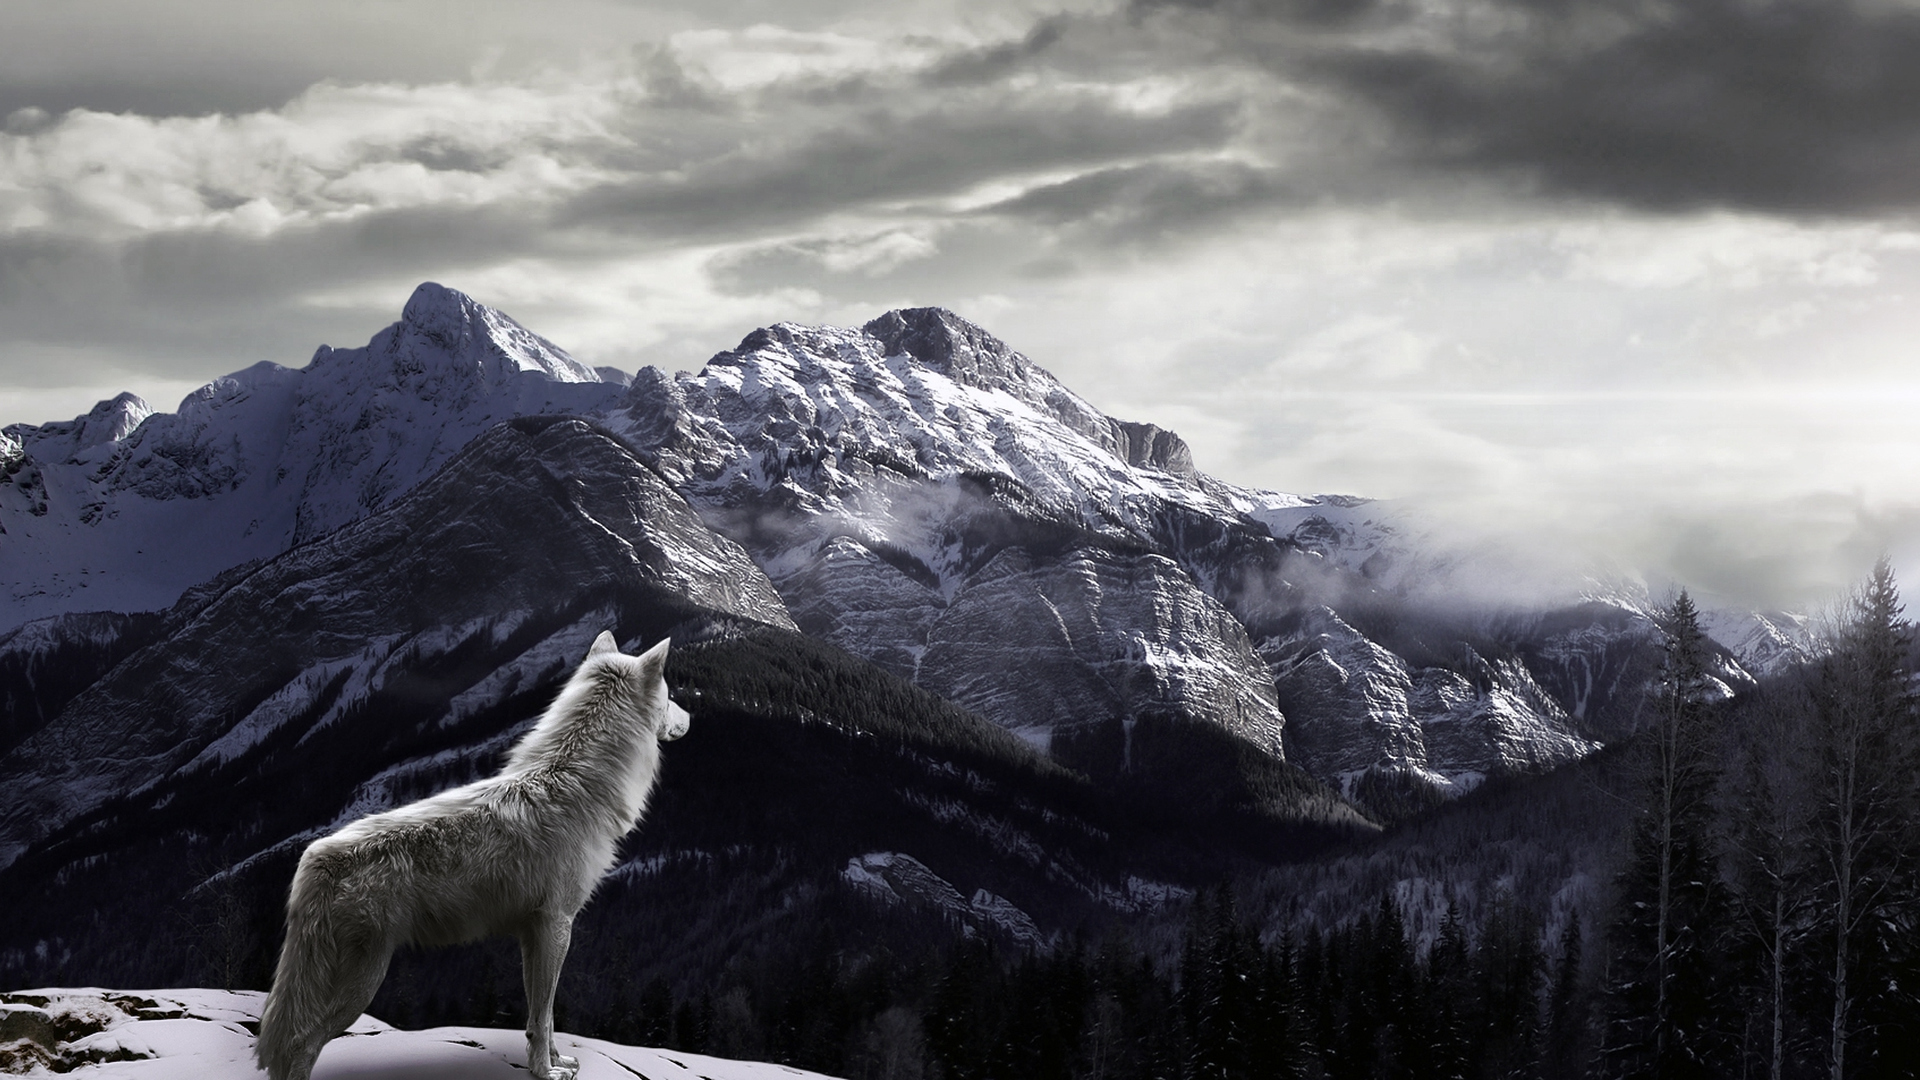 http://on-desktop.com/wps/Animals___Wolves_and_Foxes_The_wolf_in_the_mountains_089631_.jpg